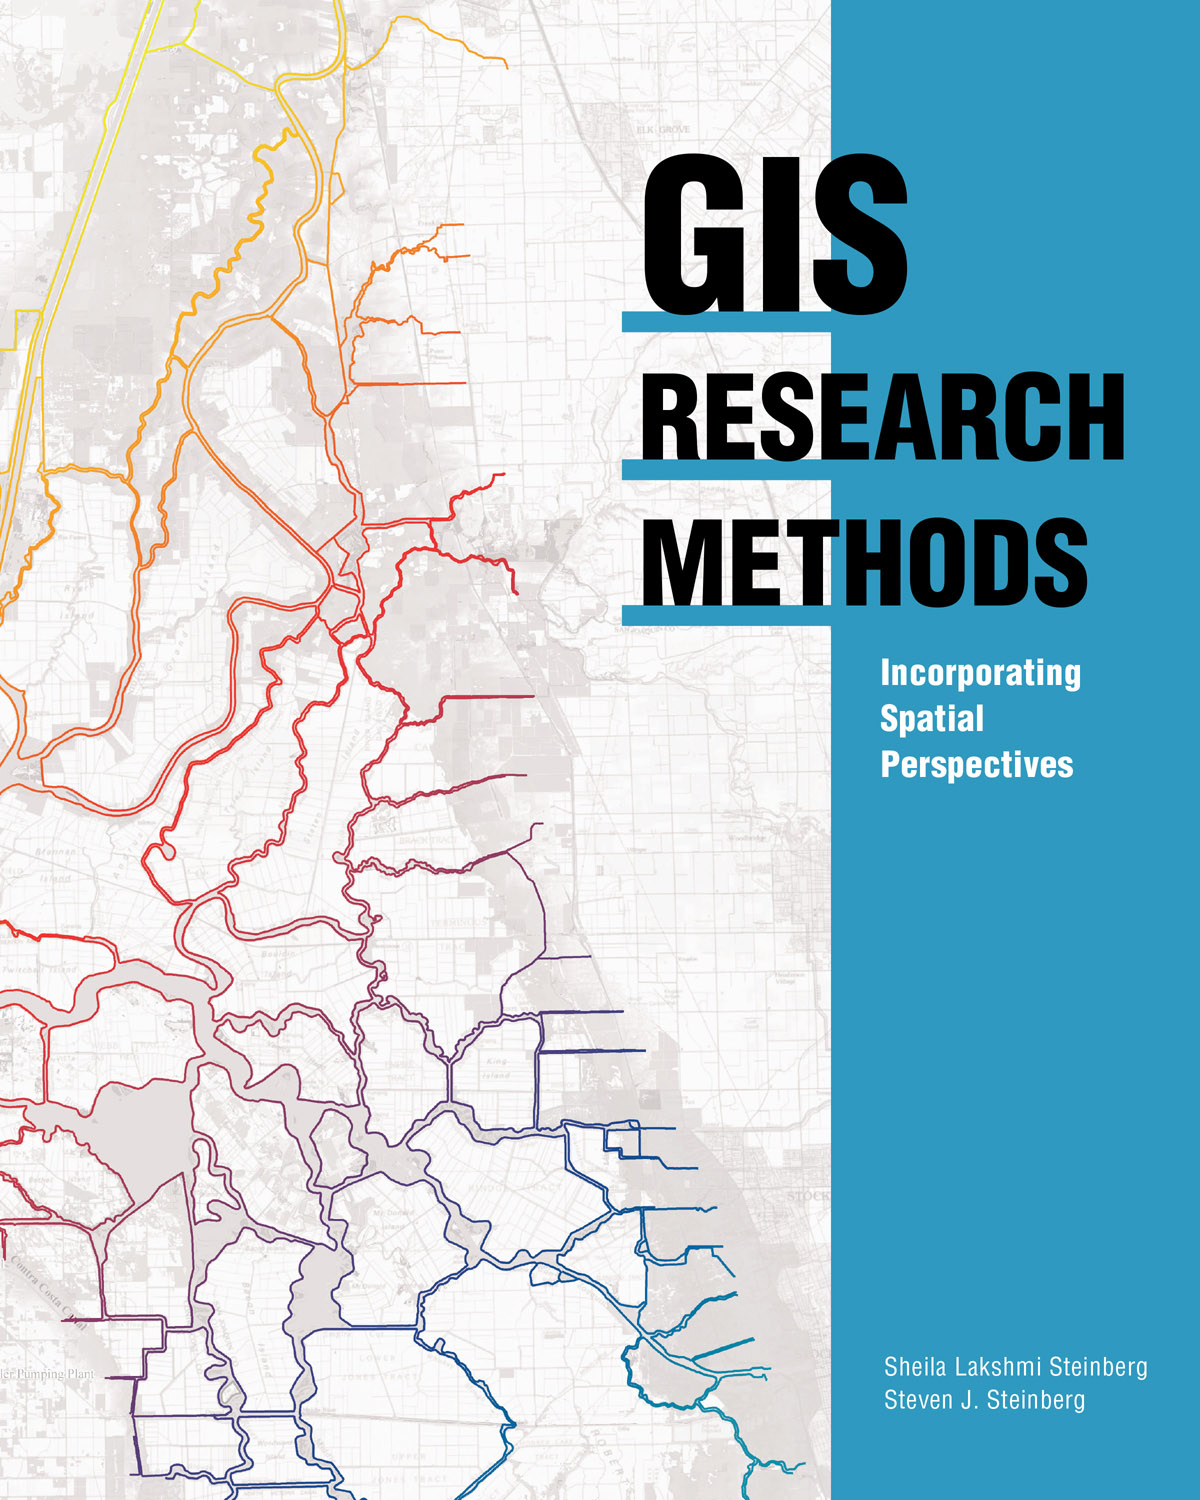 The book, which was written for social and physical science professionals and academics, provides a solid introduction to research methods using GIS.